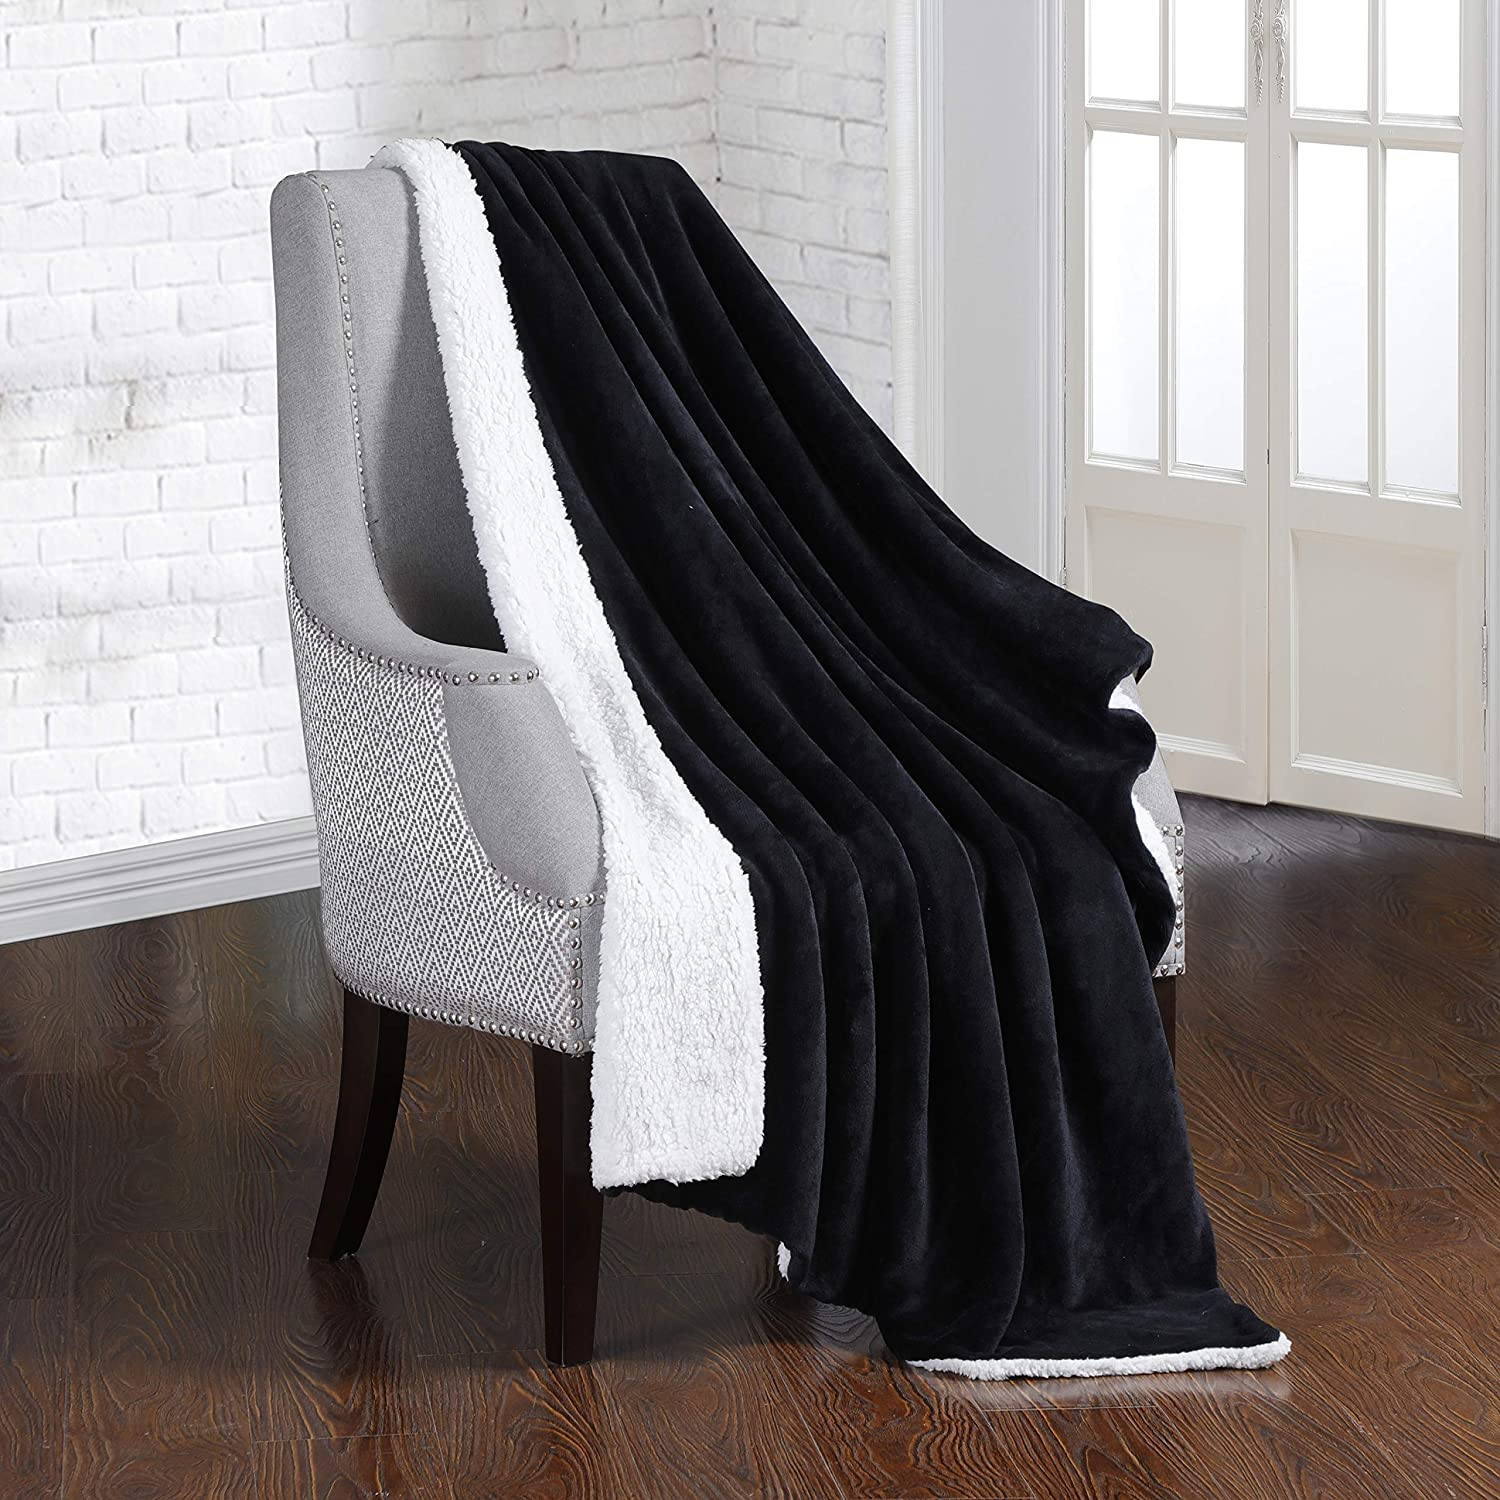 Dream Lab Soft Sherpa Reversible 15lb Weighted Blanket With Removable Washable Cover Charcoal Ivory 48 X 72 Home Kitchen